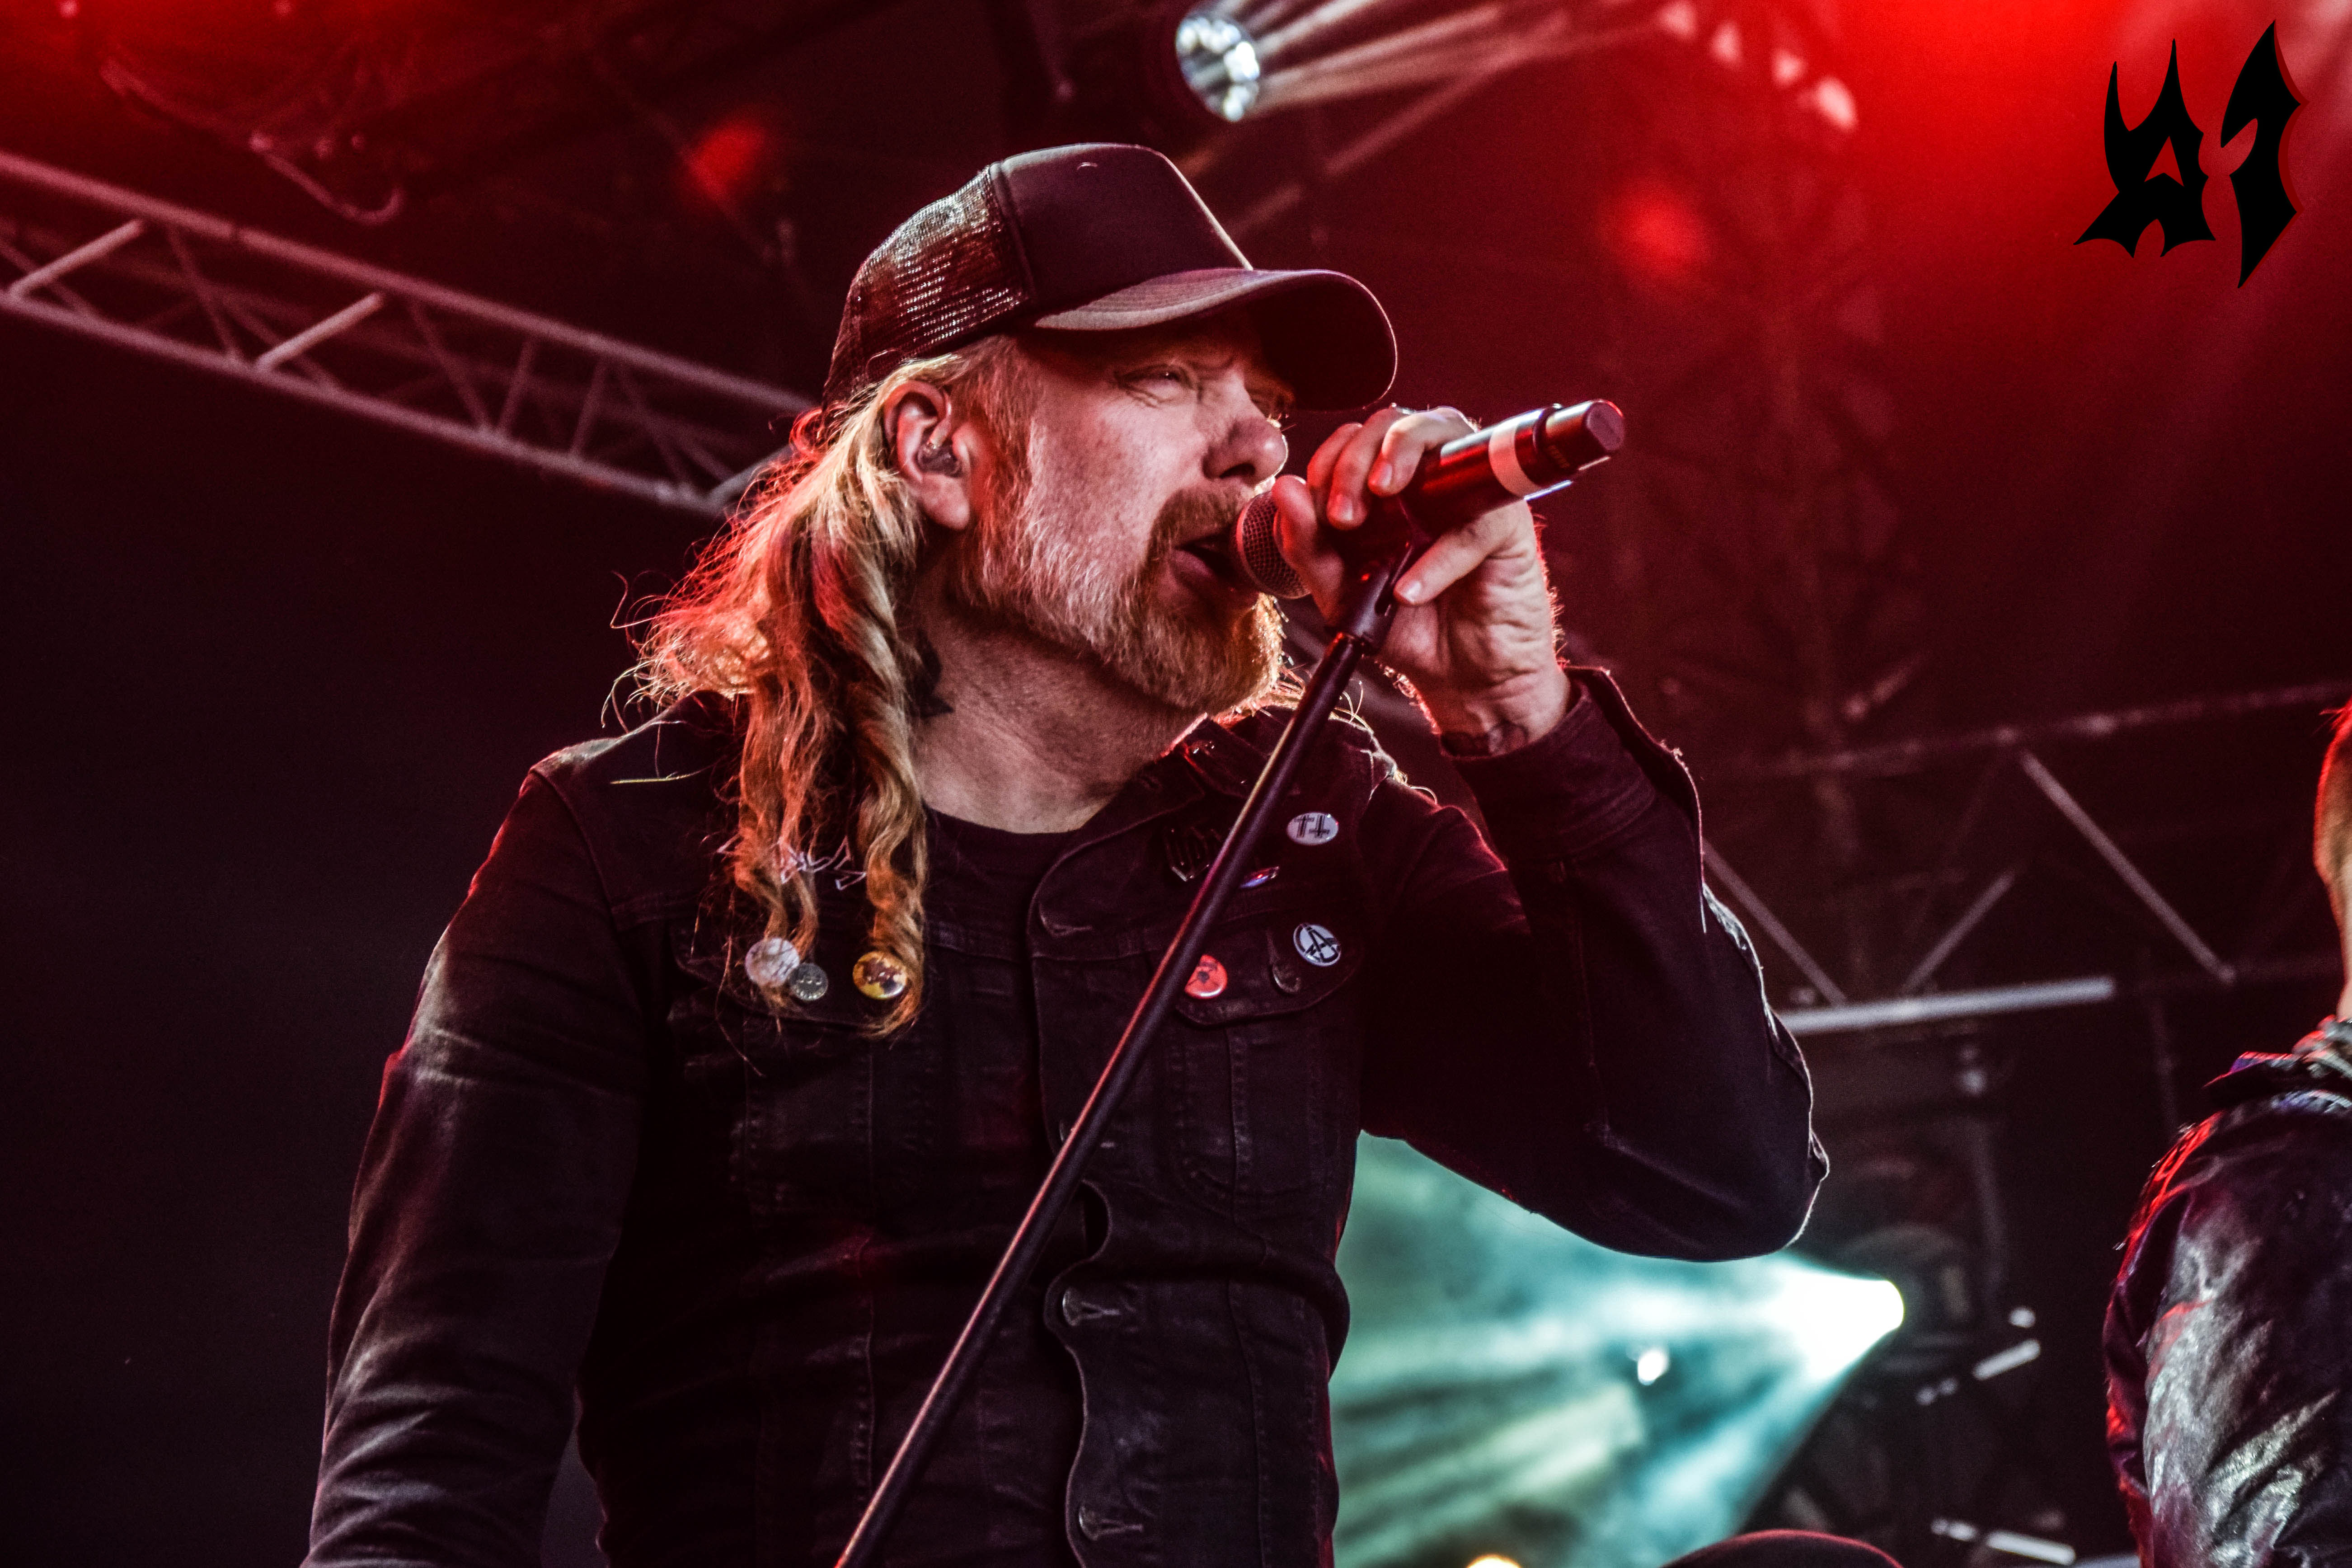 Hellfest - Day 3 - The Lurking Fear 4